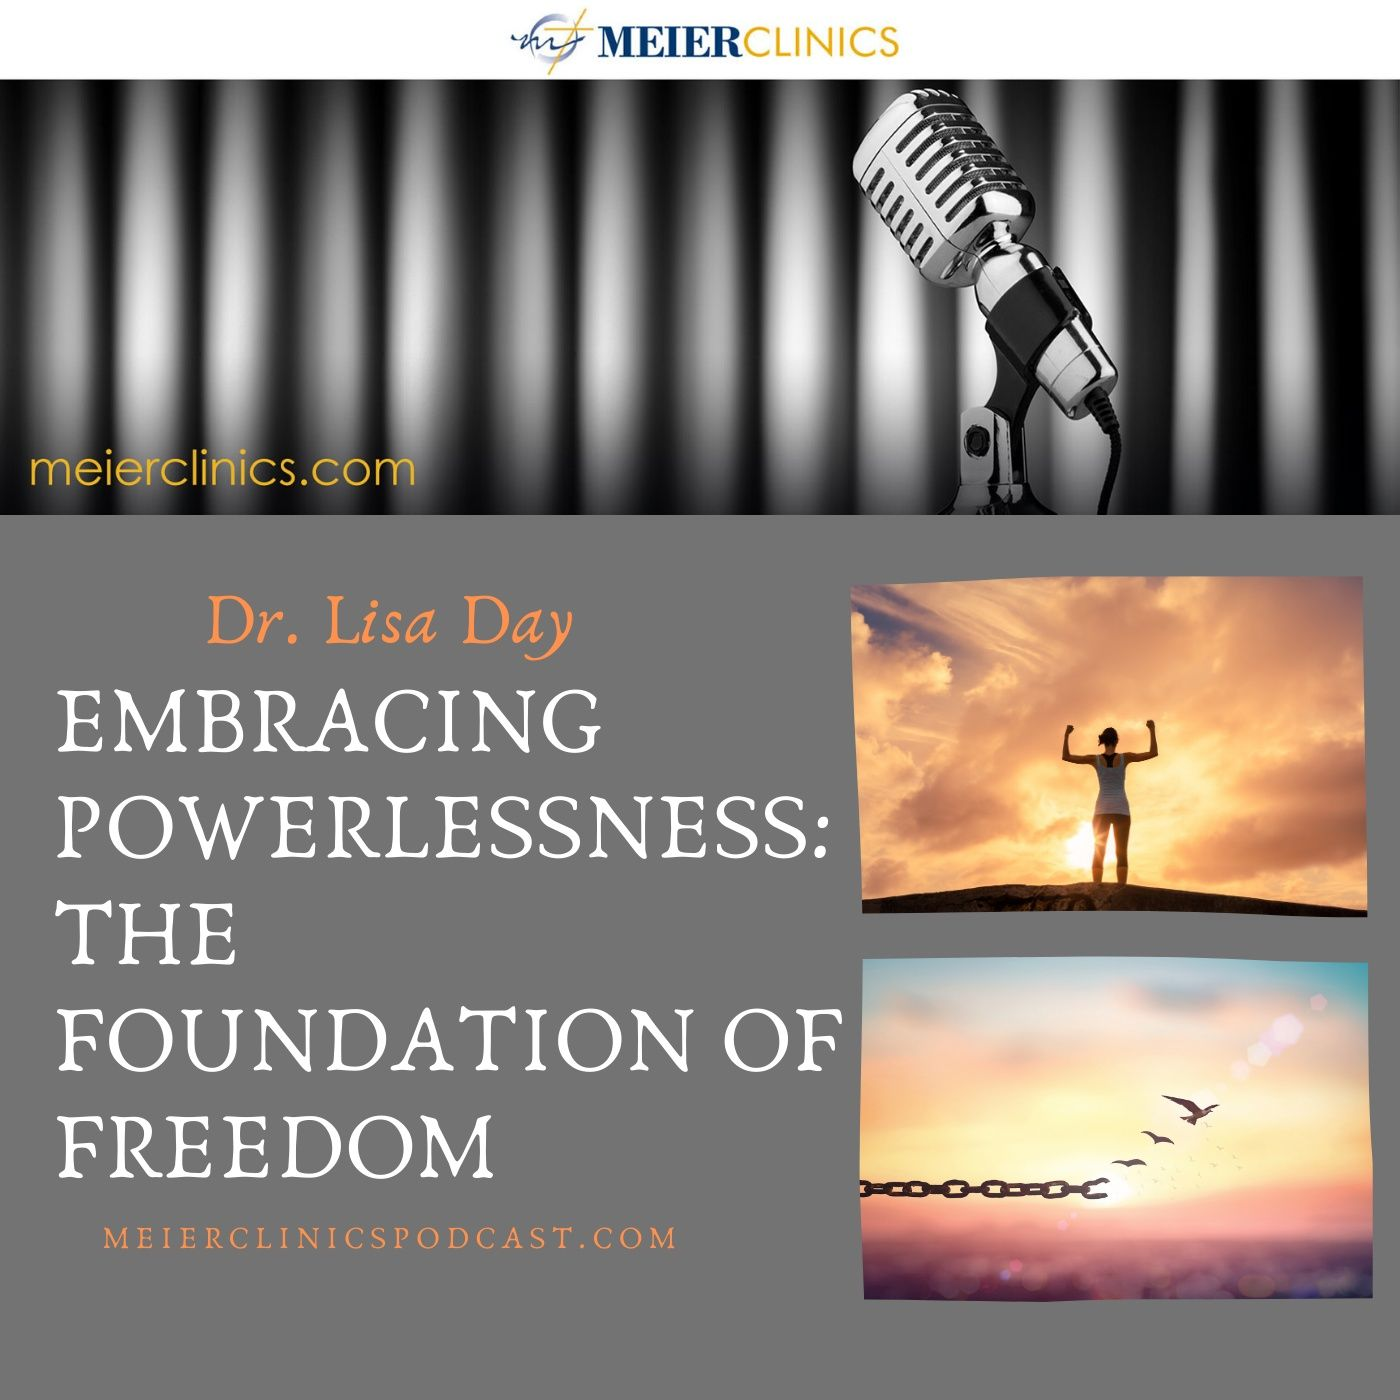 Embracing Powerlessness: The Foundation of Freedom